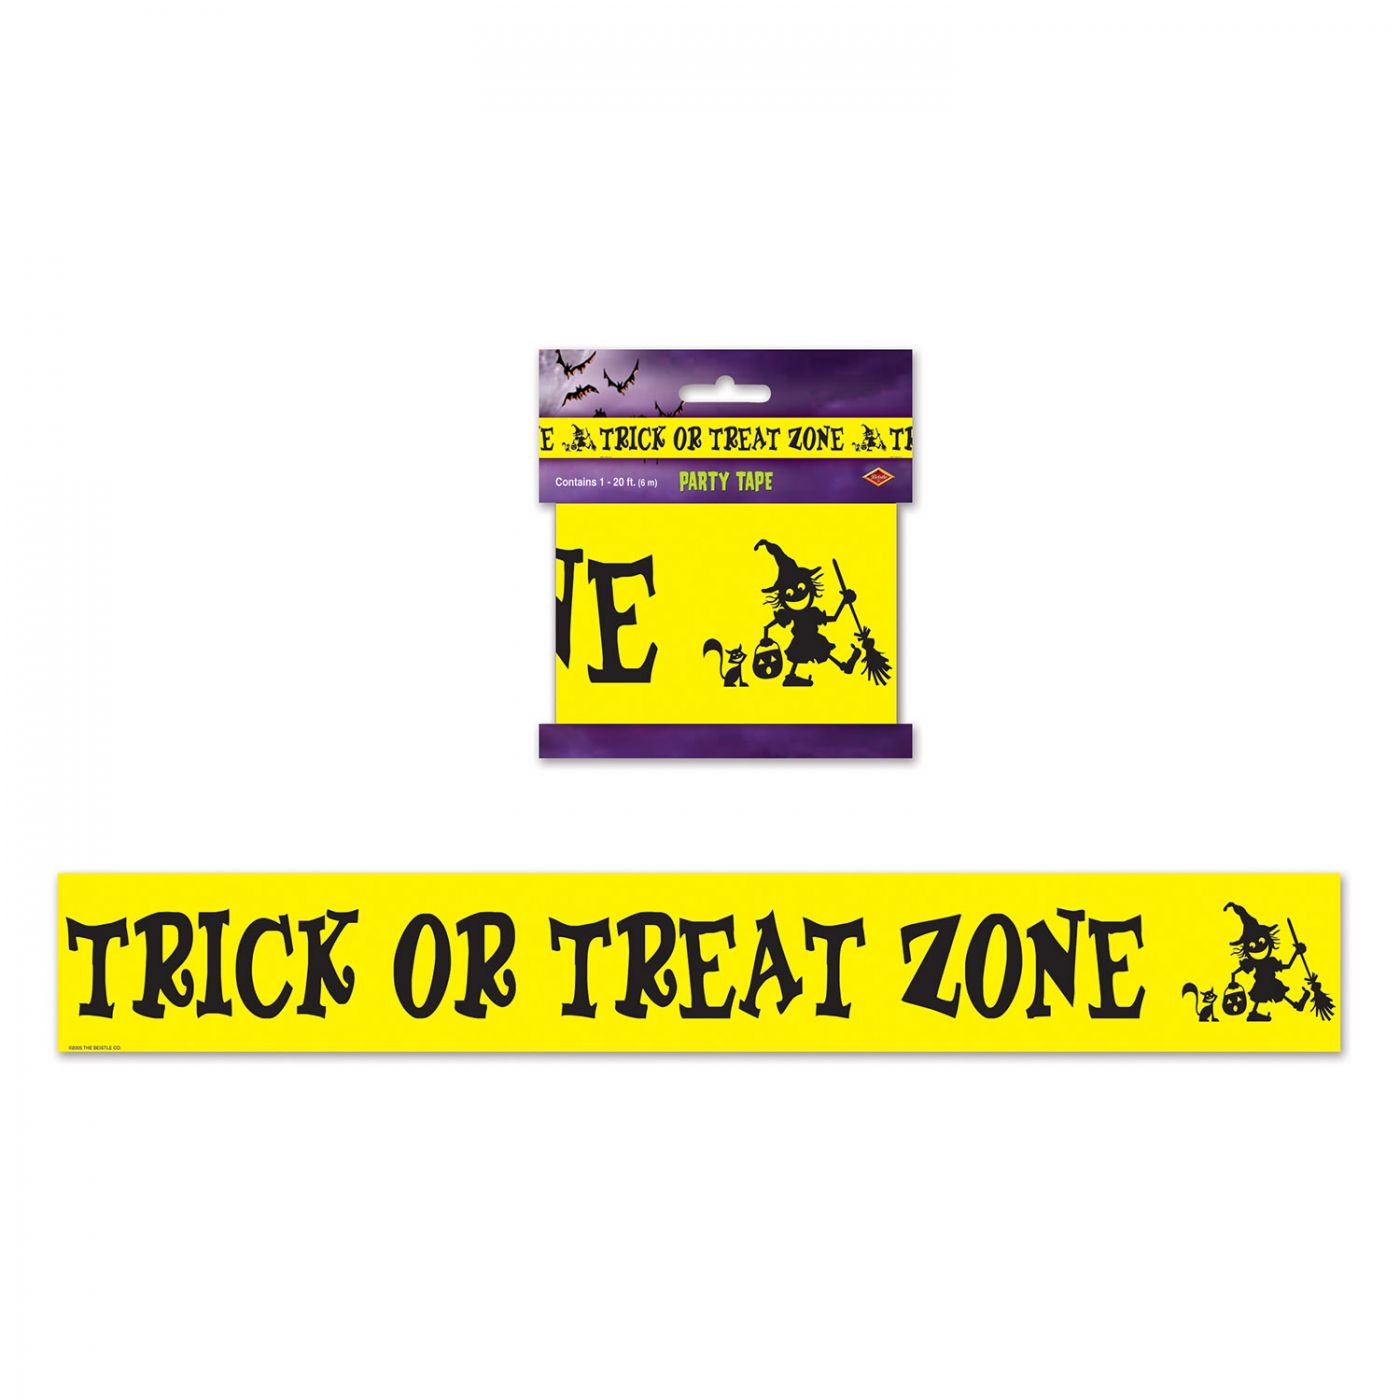 Trick Or Treat Zone Party Tape image